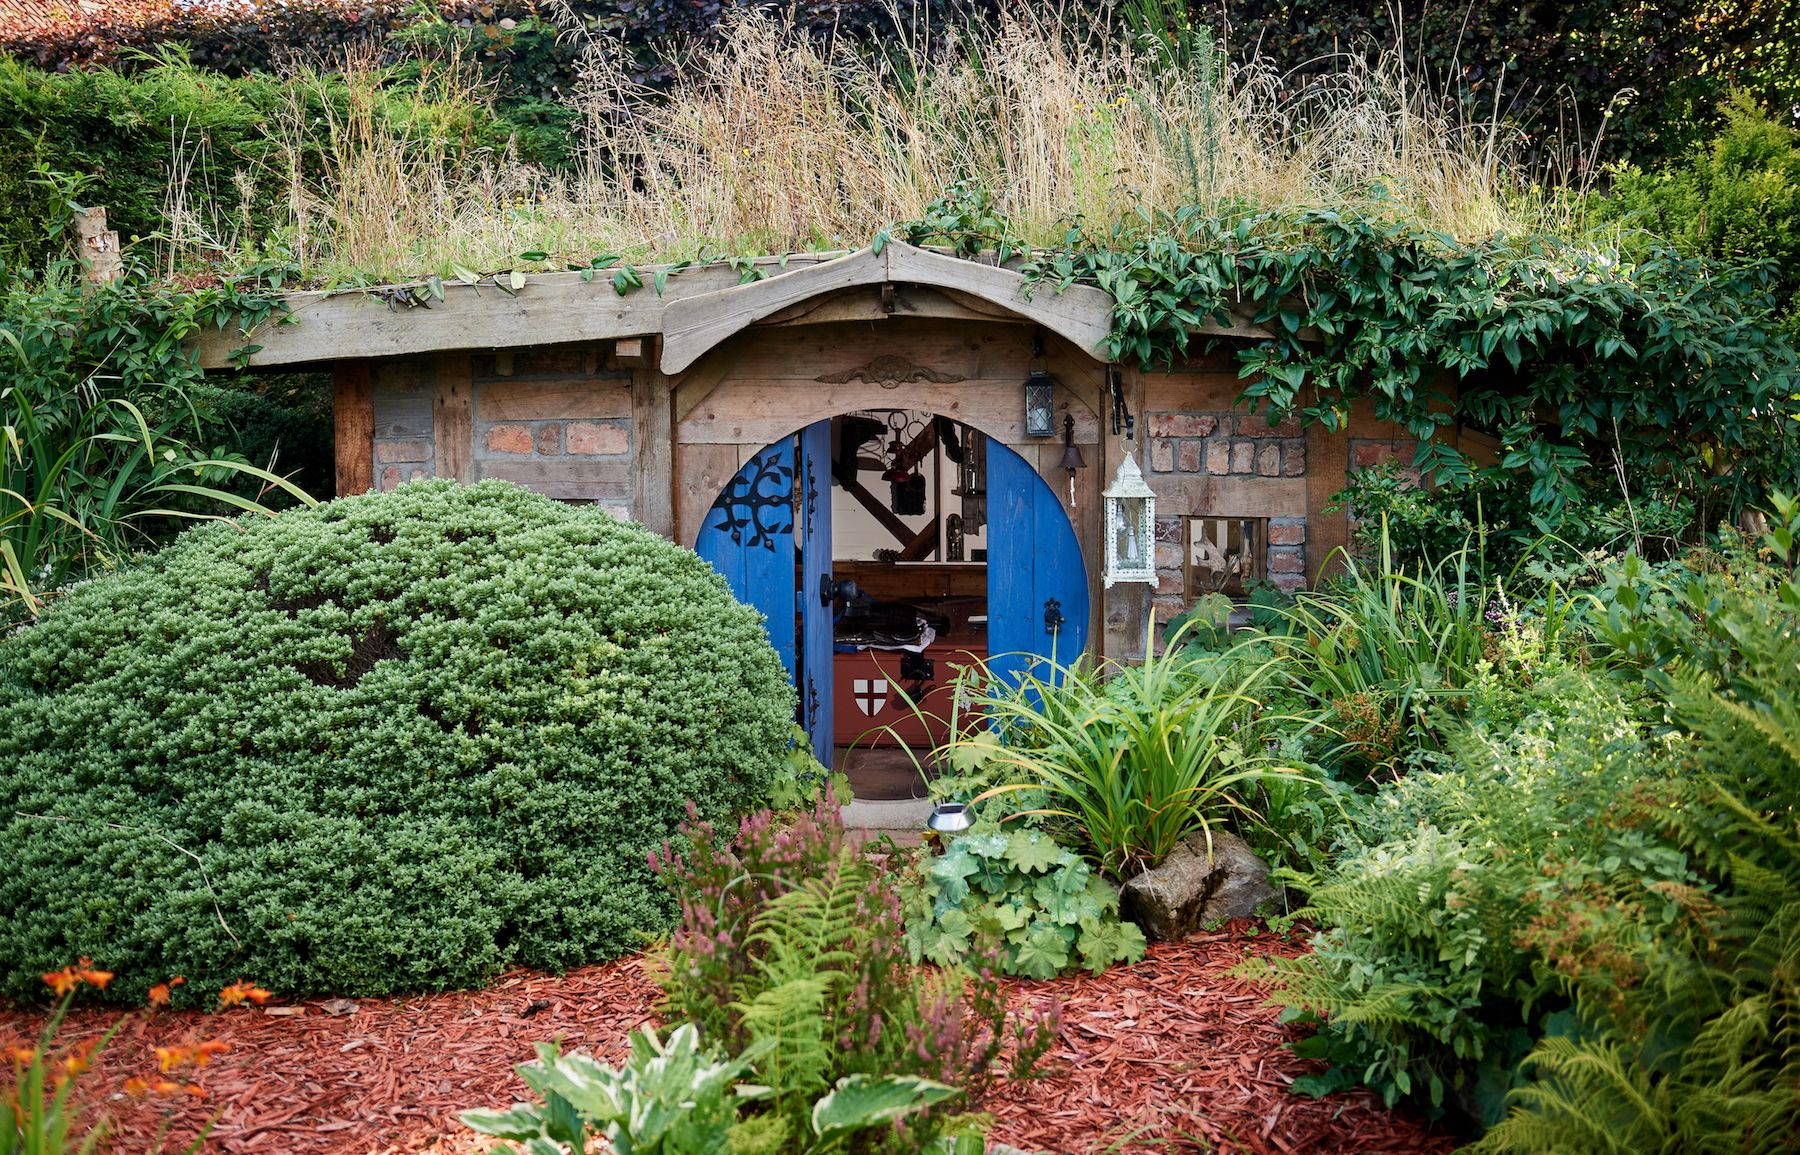 Shed of the Year 2019 winner is nature-themed hobbit hole shed, Bux End